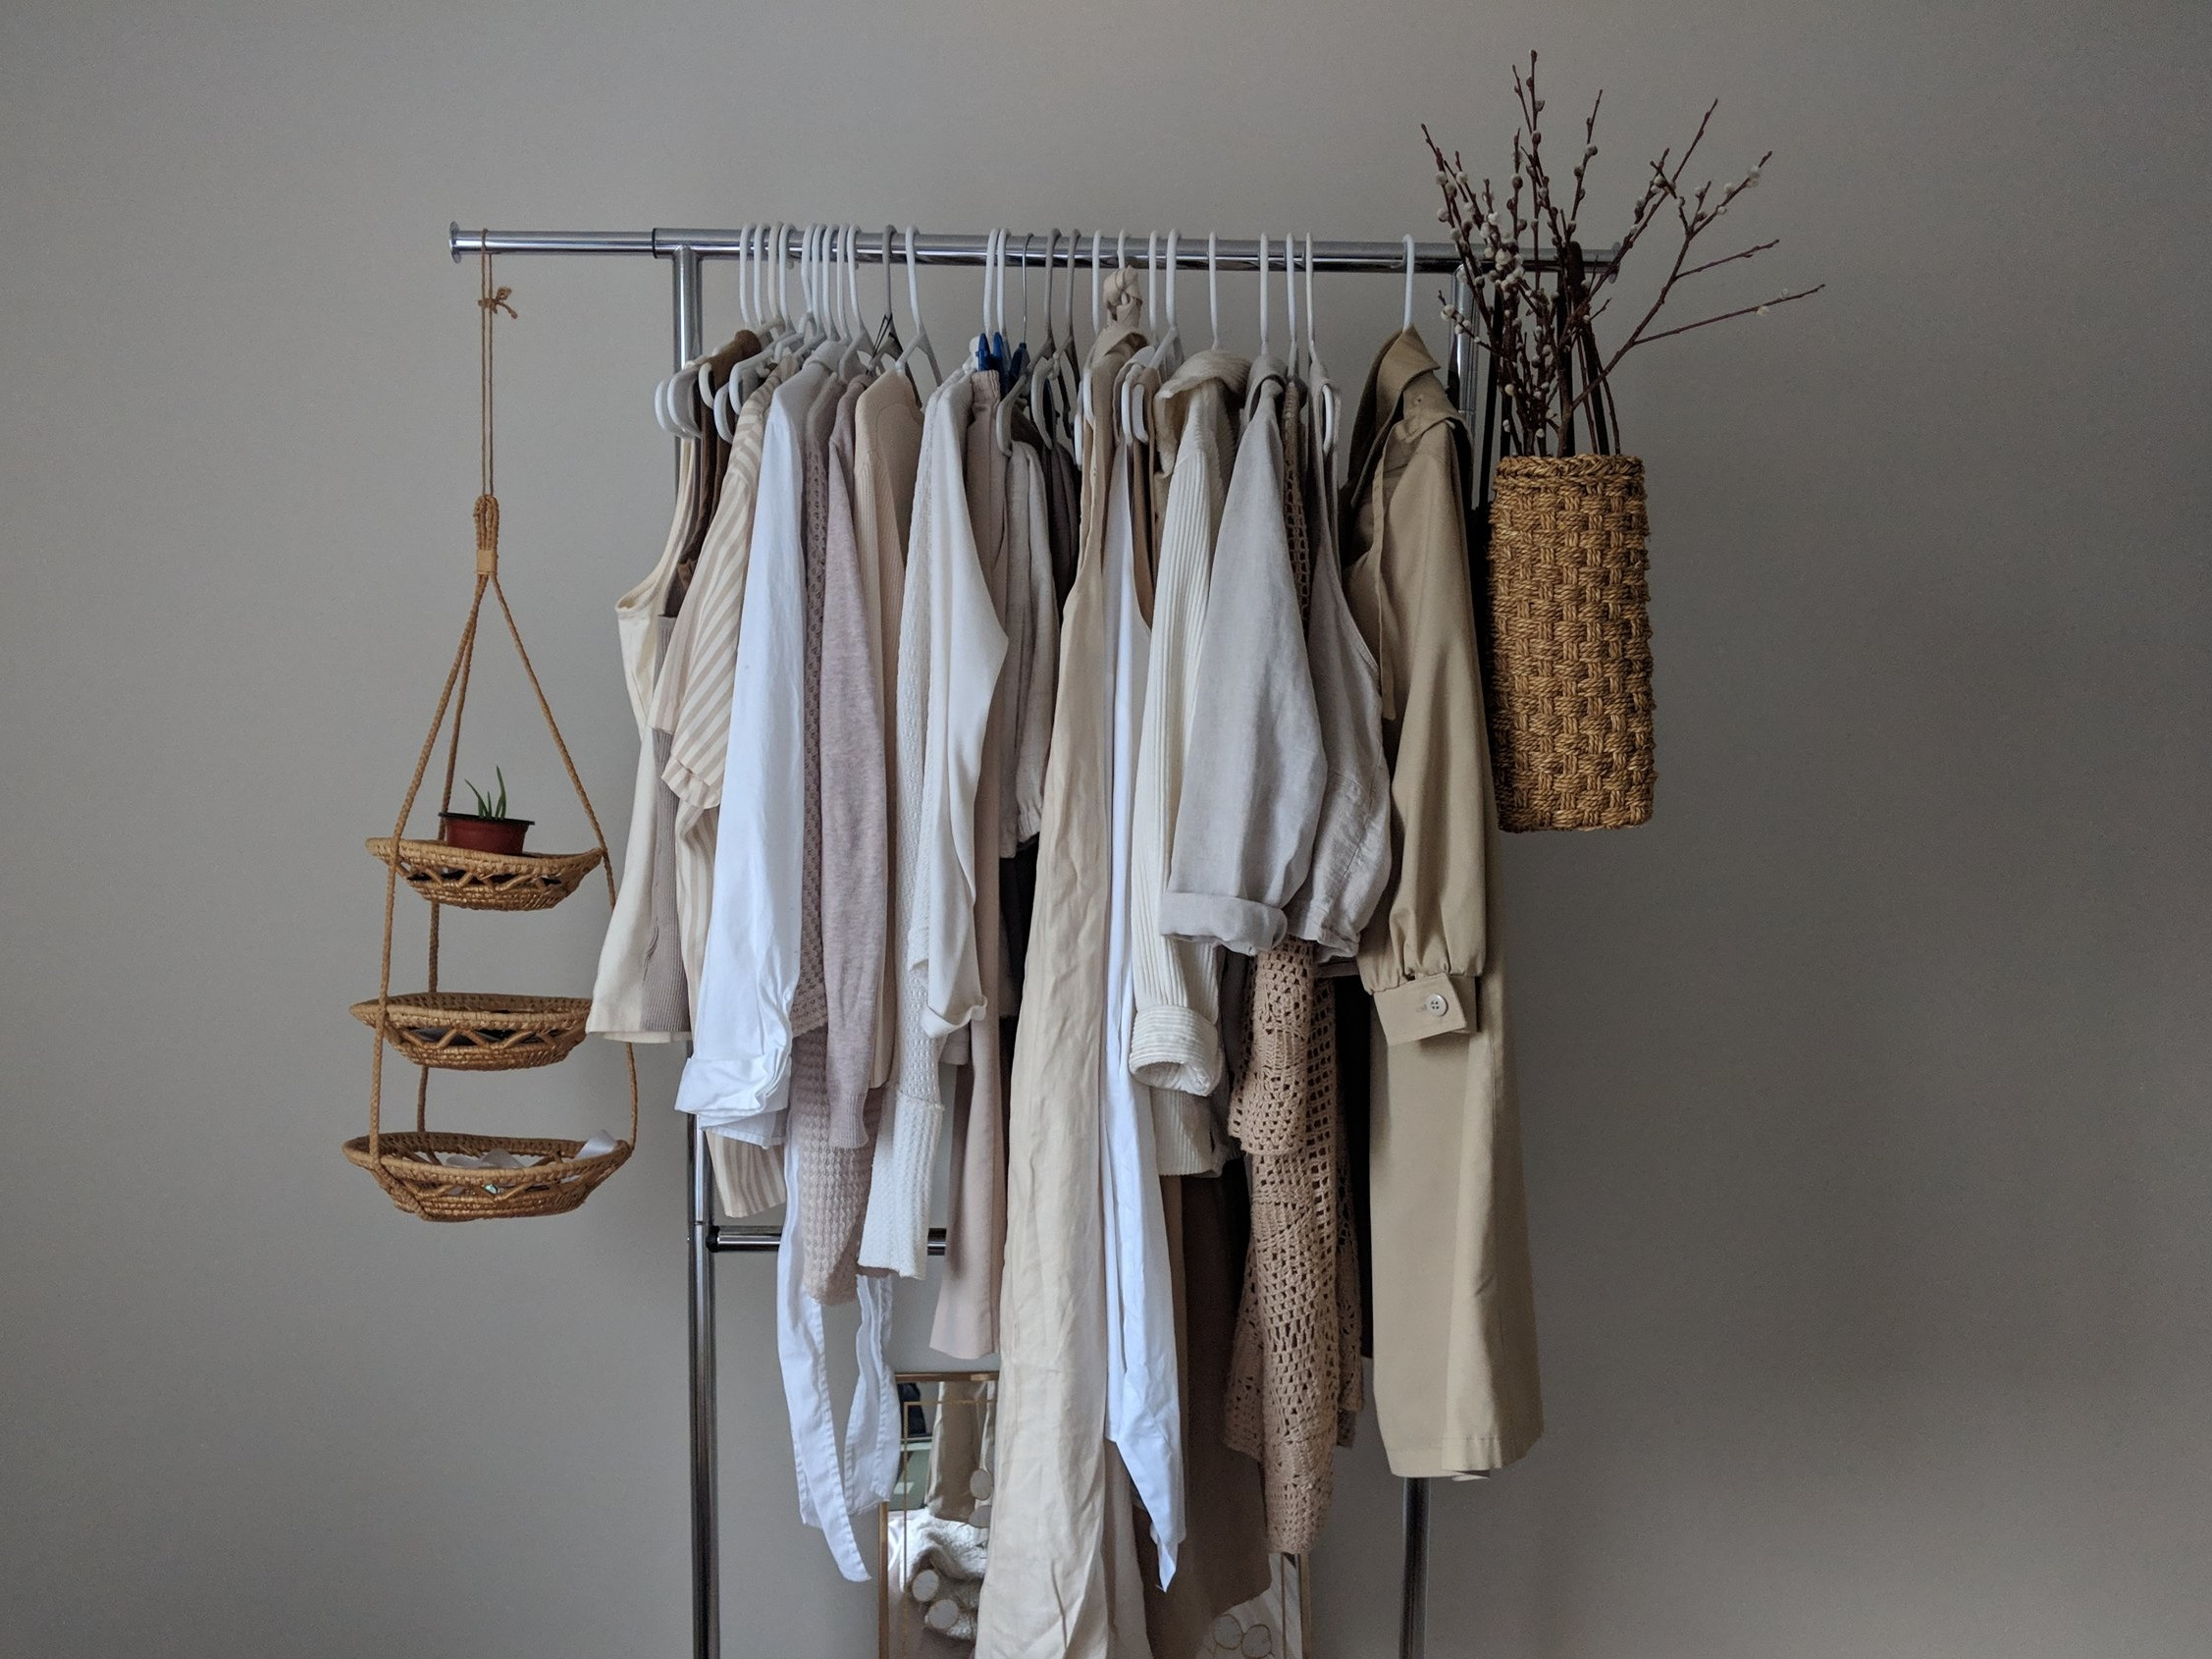 9. Clothing Rack - Craigslist, $15 each: I bought two of these clothing racks from a random cab company on Craigslist and I used them for my clothing swap. Now that it's over, I use it to display all my neutral clothes, which is very much a central part of my bedroom's decor!